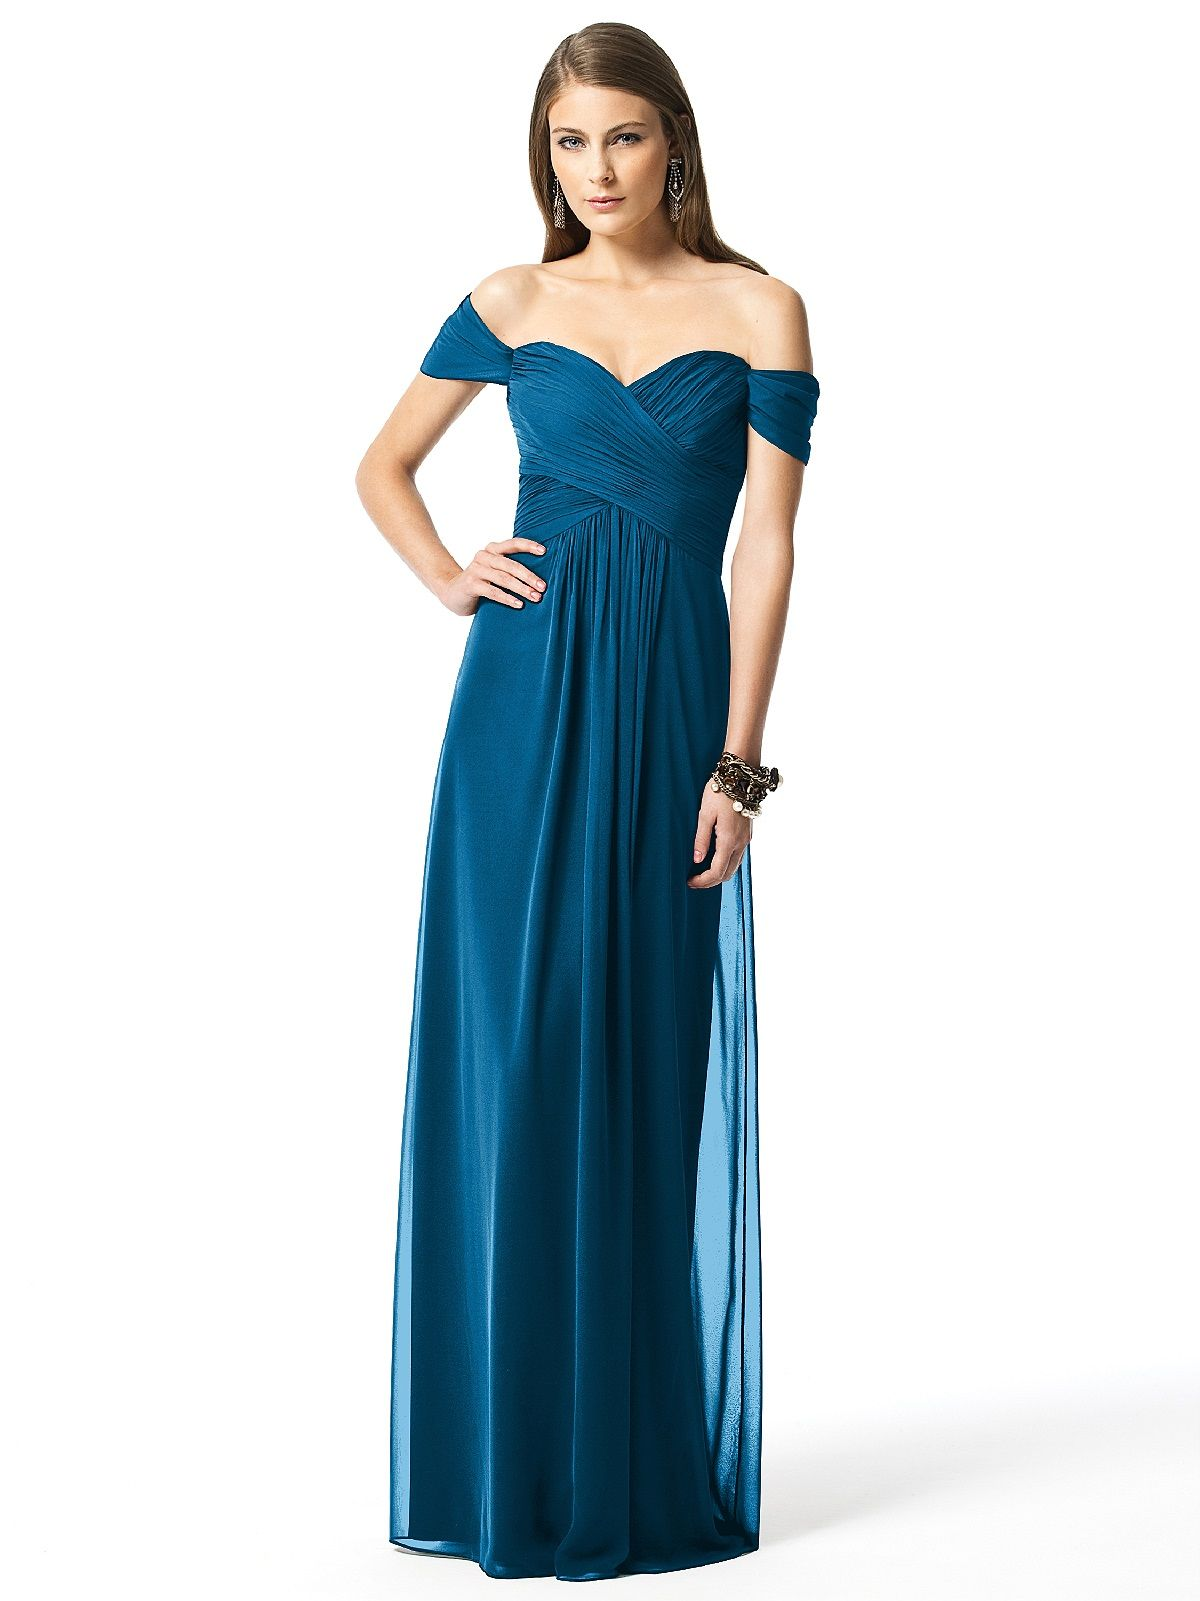 Dessy collection style chiffon bridesmaid dresses bodice and